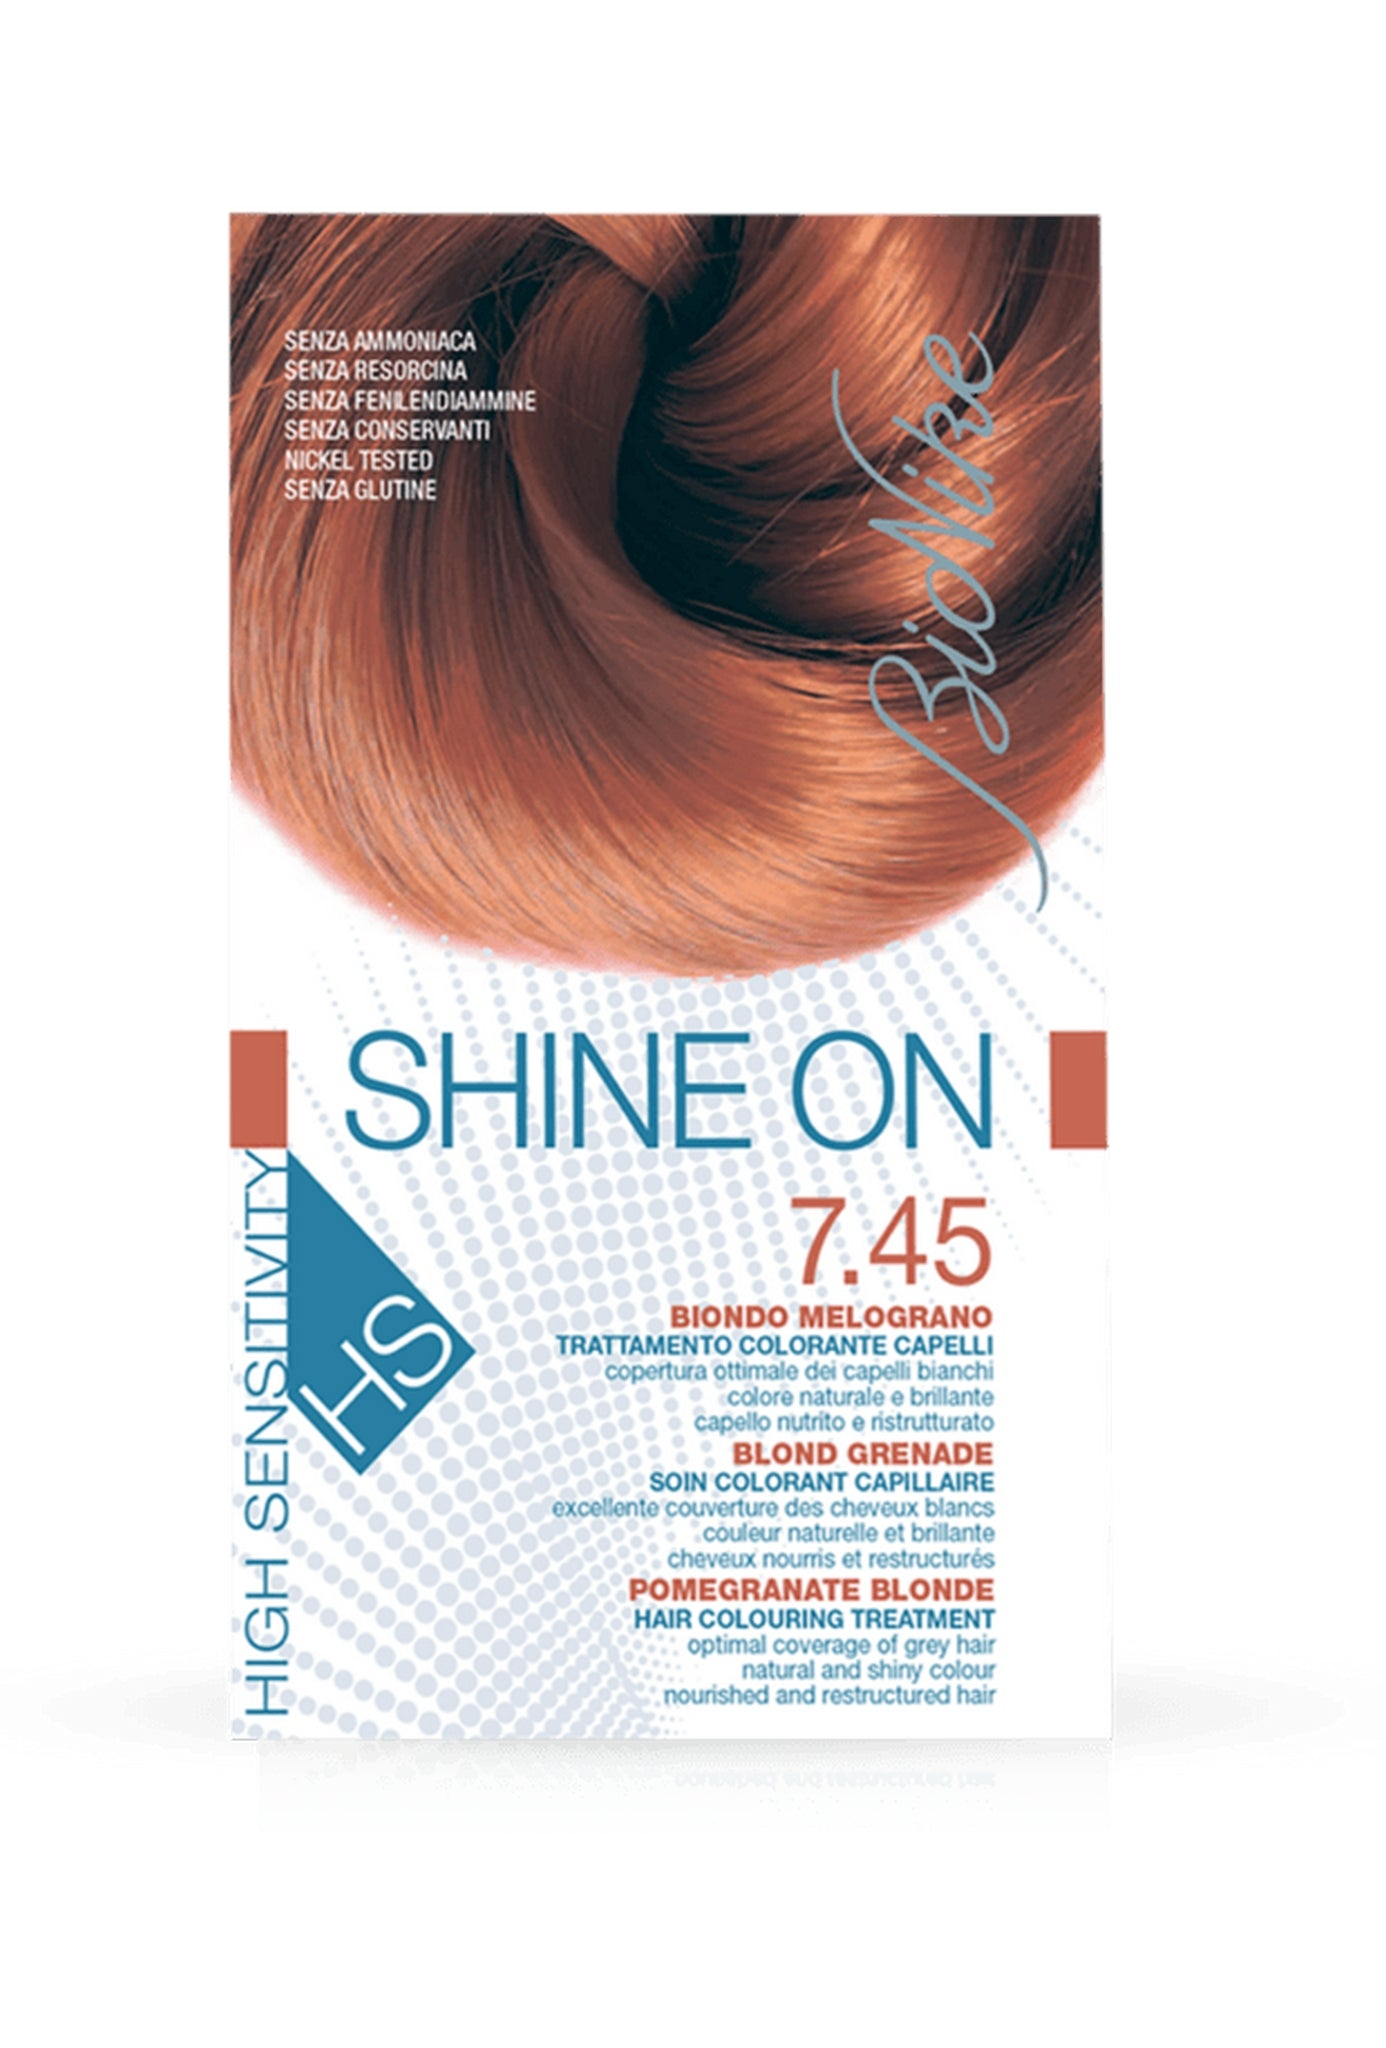 SHINE ON HS Hair Colouring Treatment (7.45 - Pomegranate Blonde)